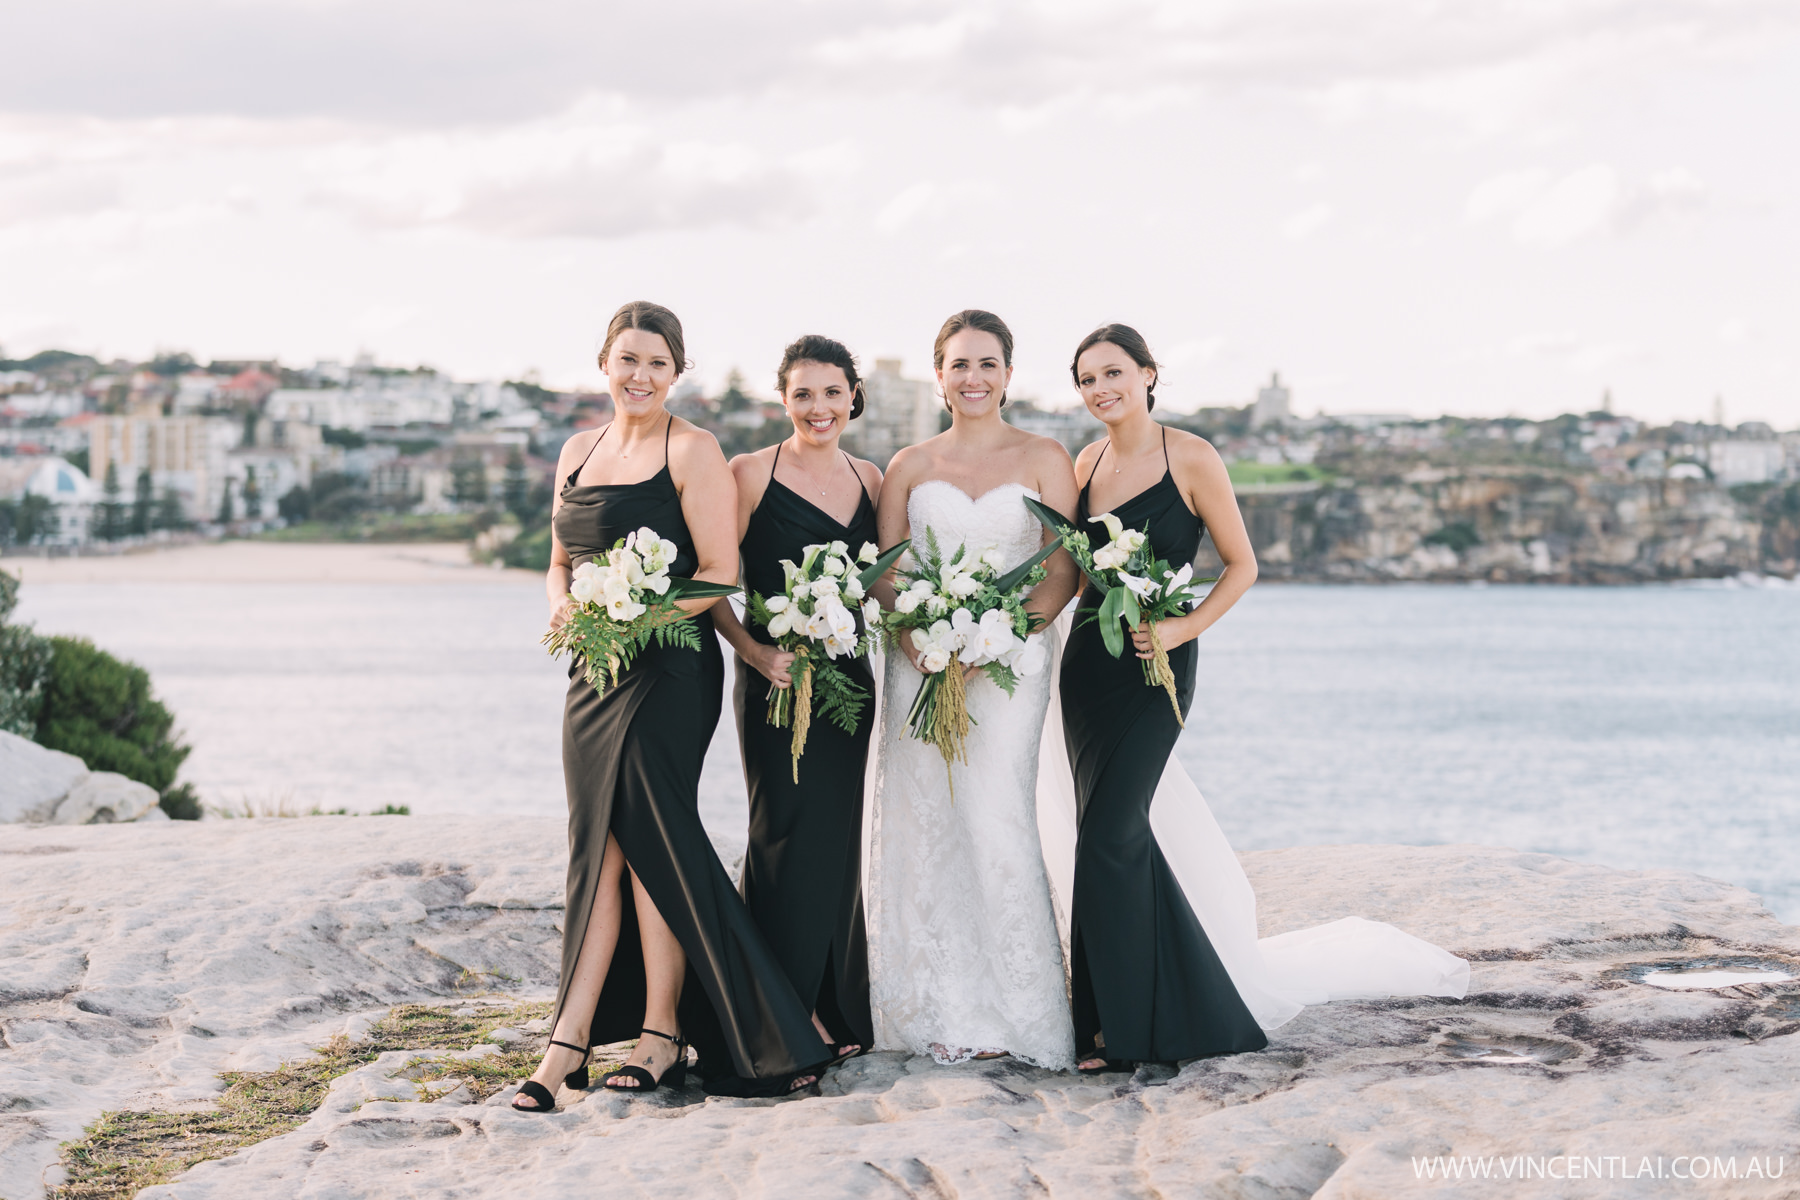 Wedding at Wylie's Baths Coogee Beach